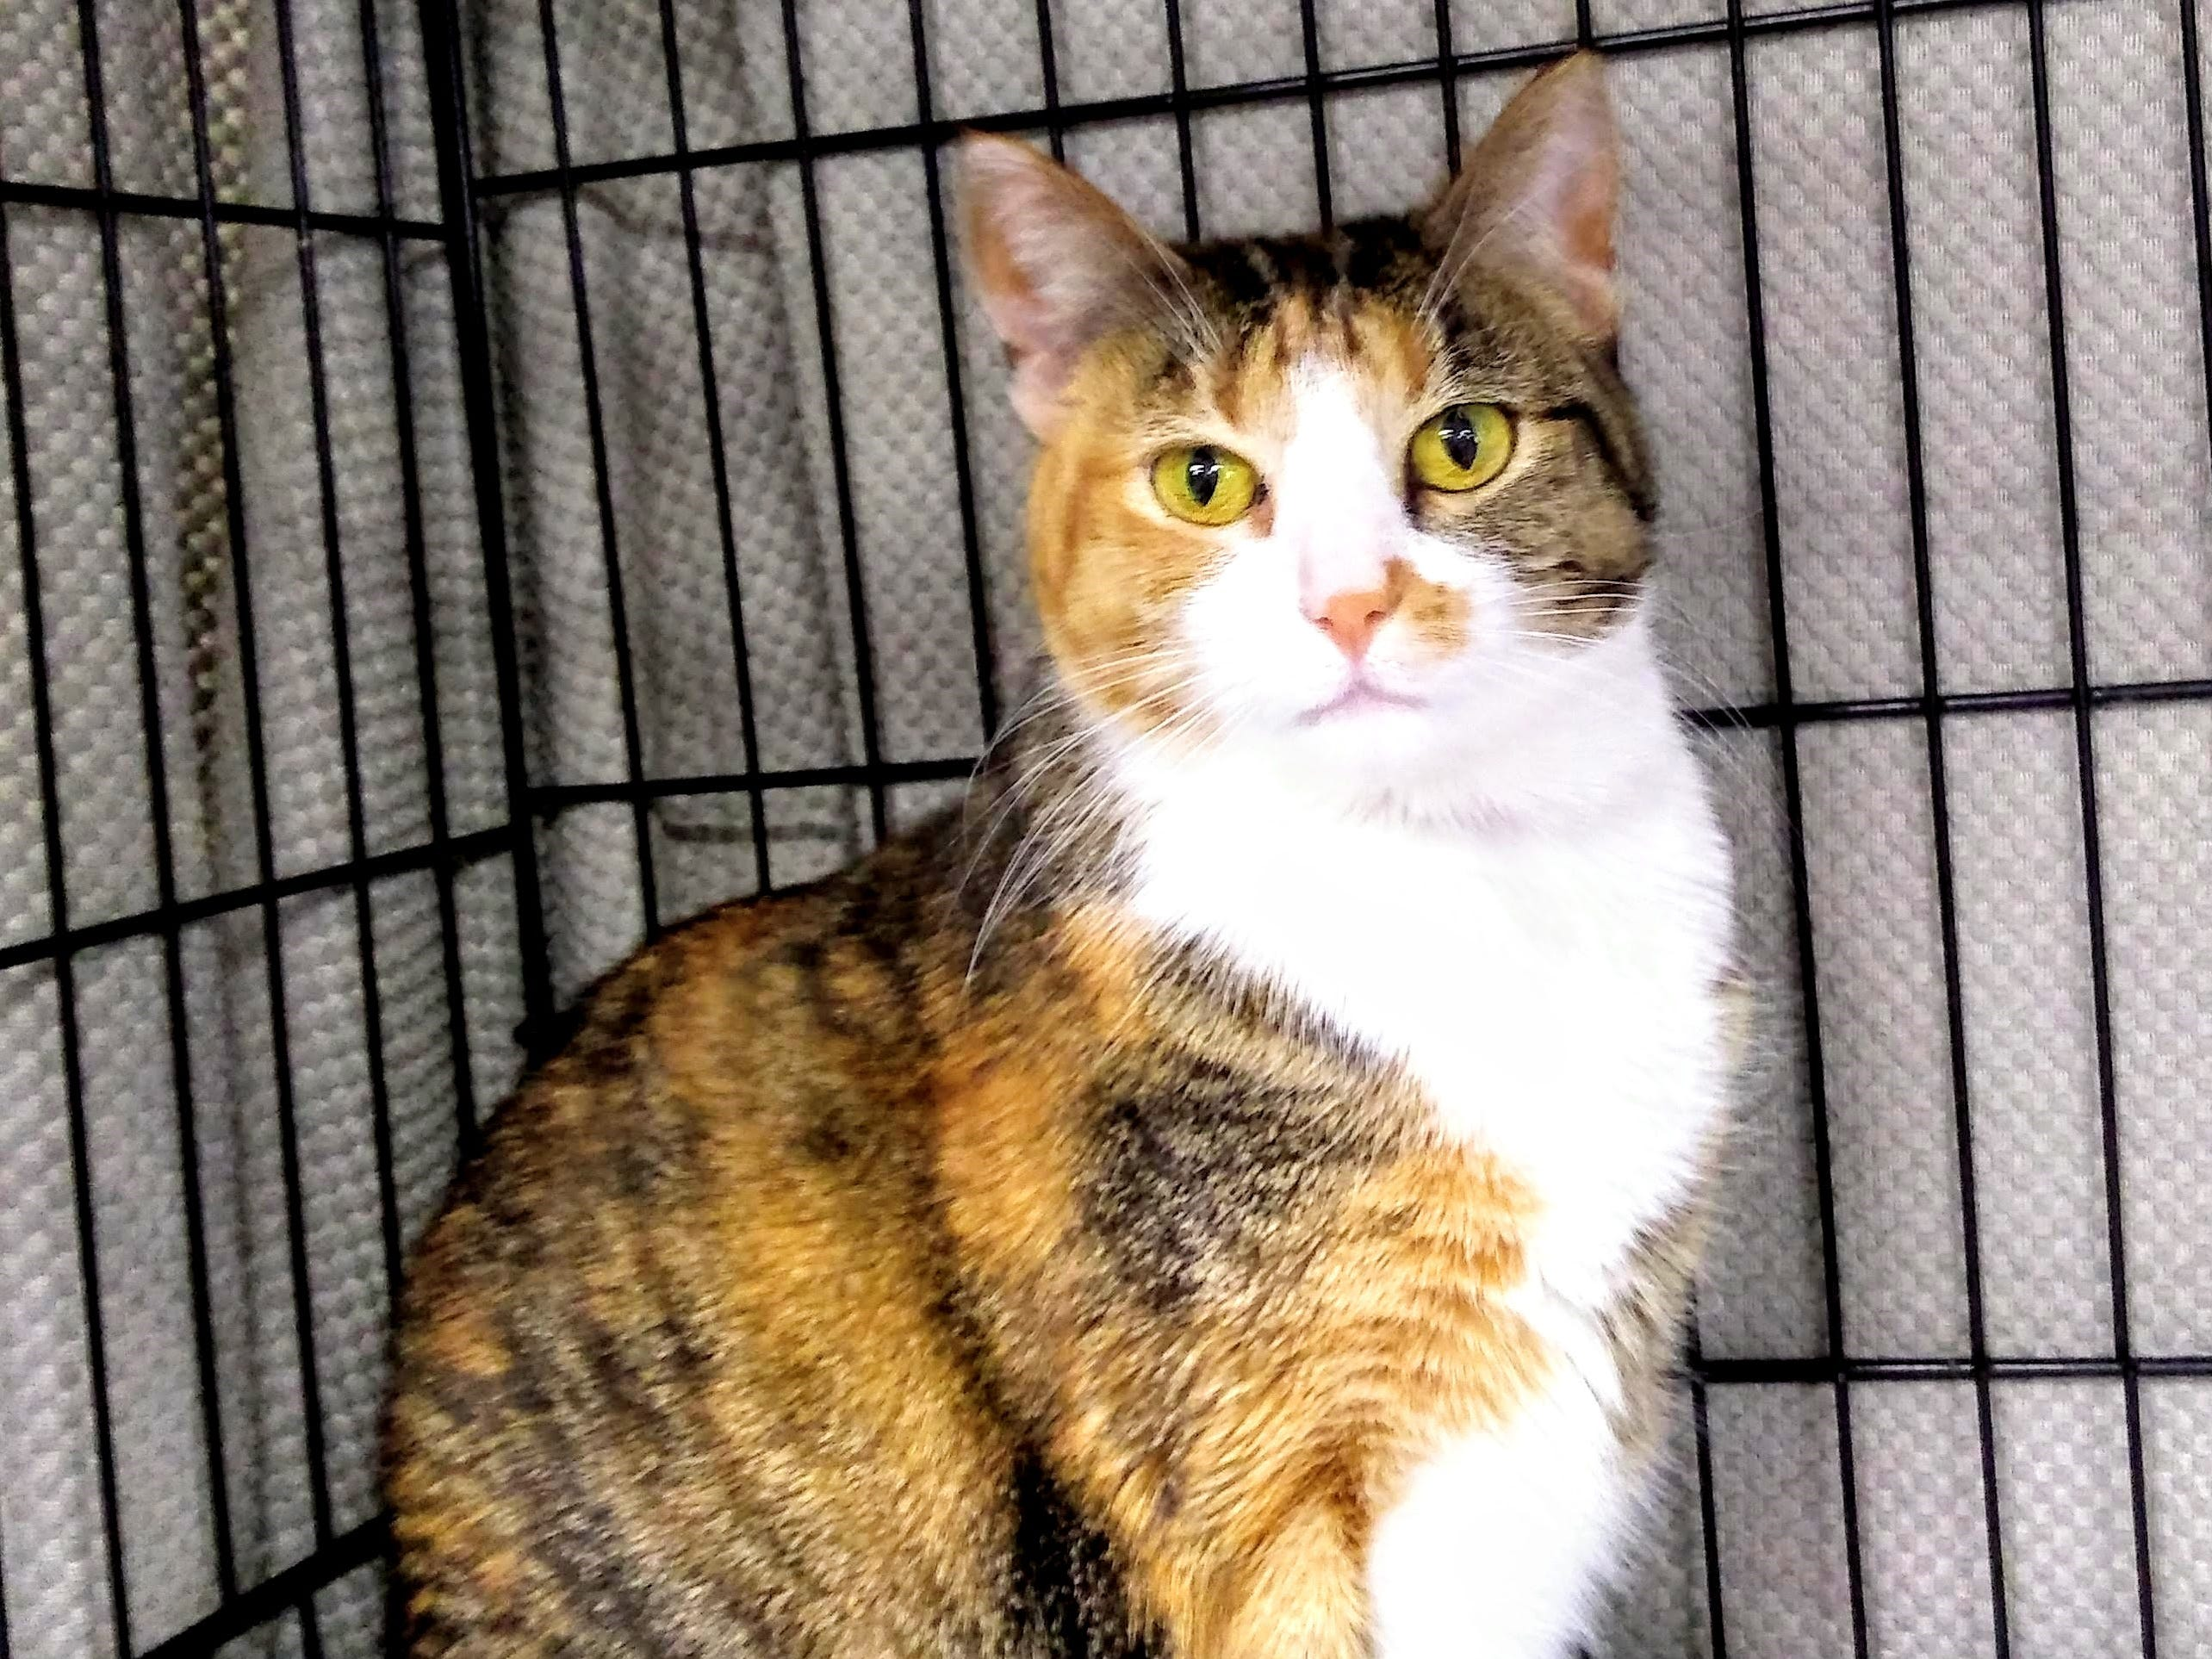 Emma is a 3 1/2-year-old Torbie who loves to cuddle during the night time and loves to sleep with kids. She is good with children of all ages and likes to be held. For more information, visit www.sfof.org or call 503-362-5611.